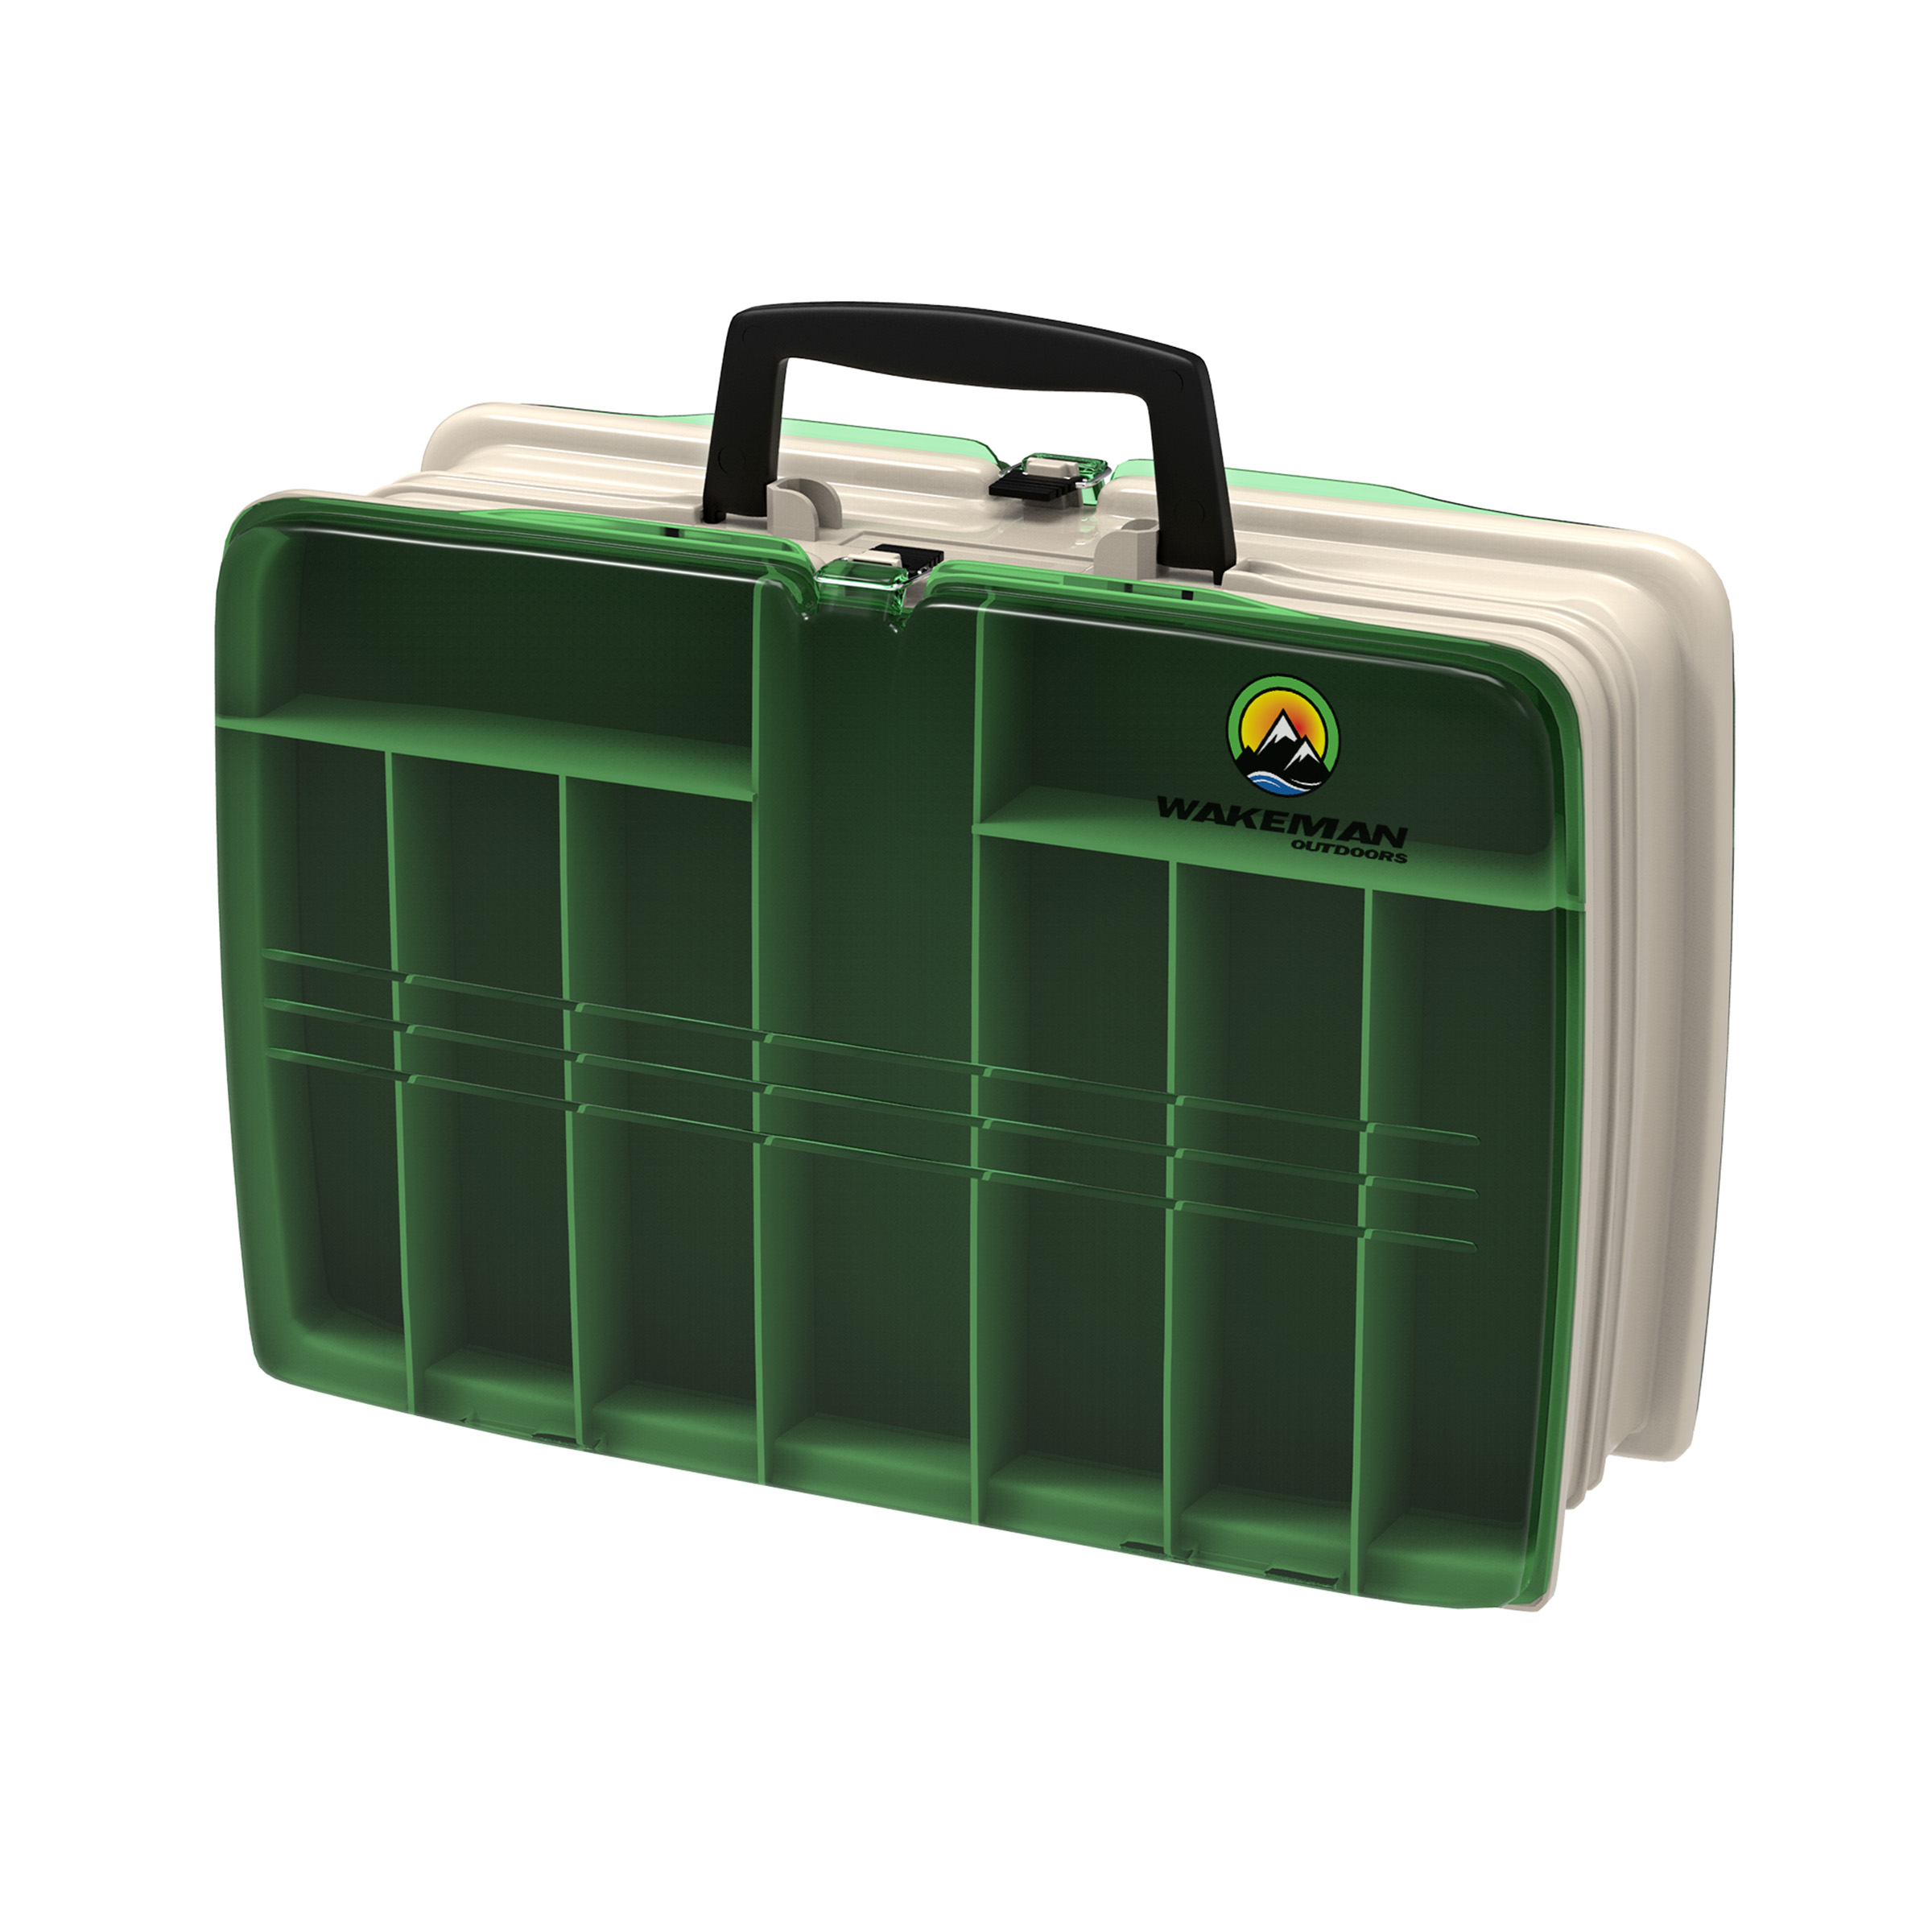 "Wakeman Fishing 2-Sided Tackle Box, 12"" x 9"" x 4"" by Trademark Global LLC"